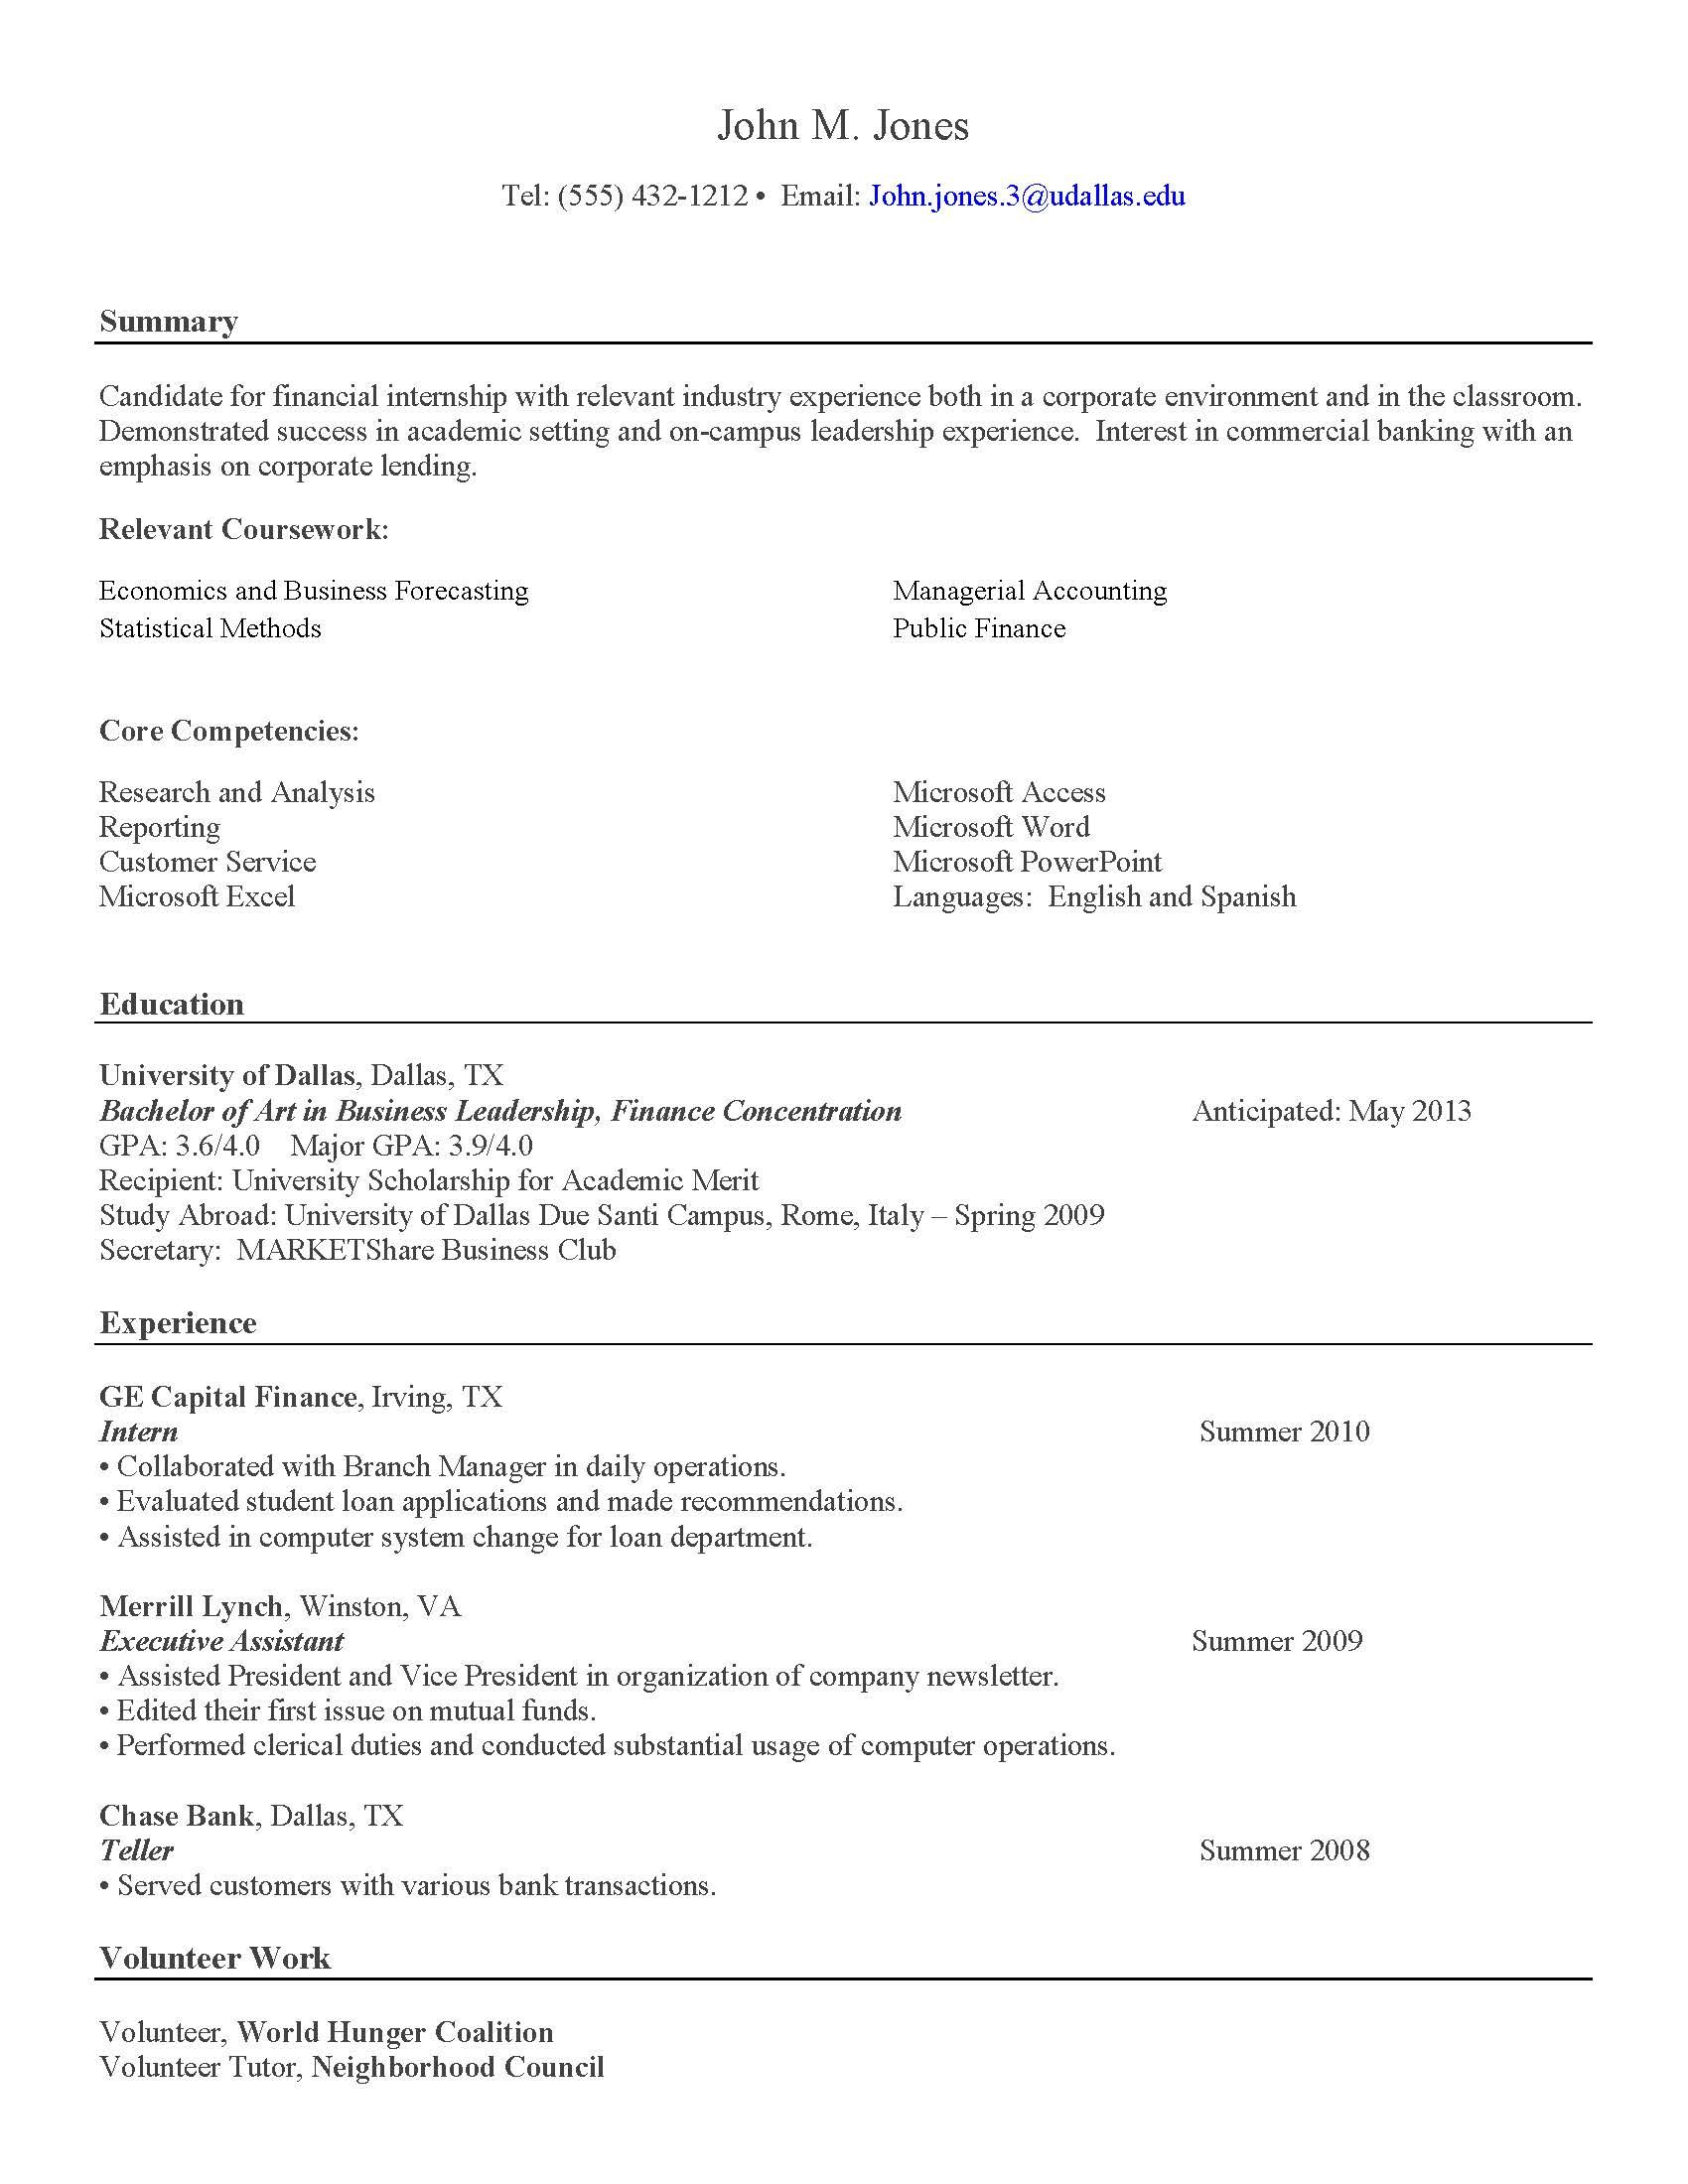 Resume Template Pinterest Chronological Resume Google Search Resume Templates